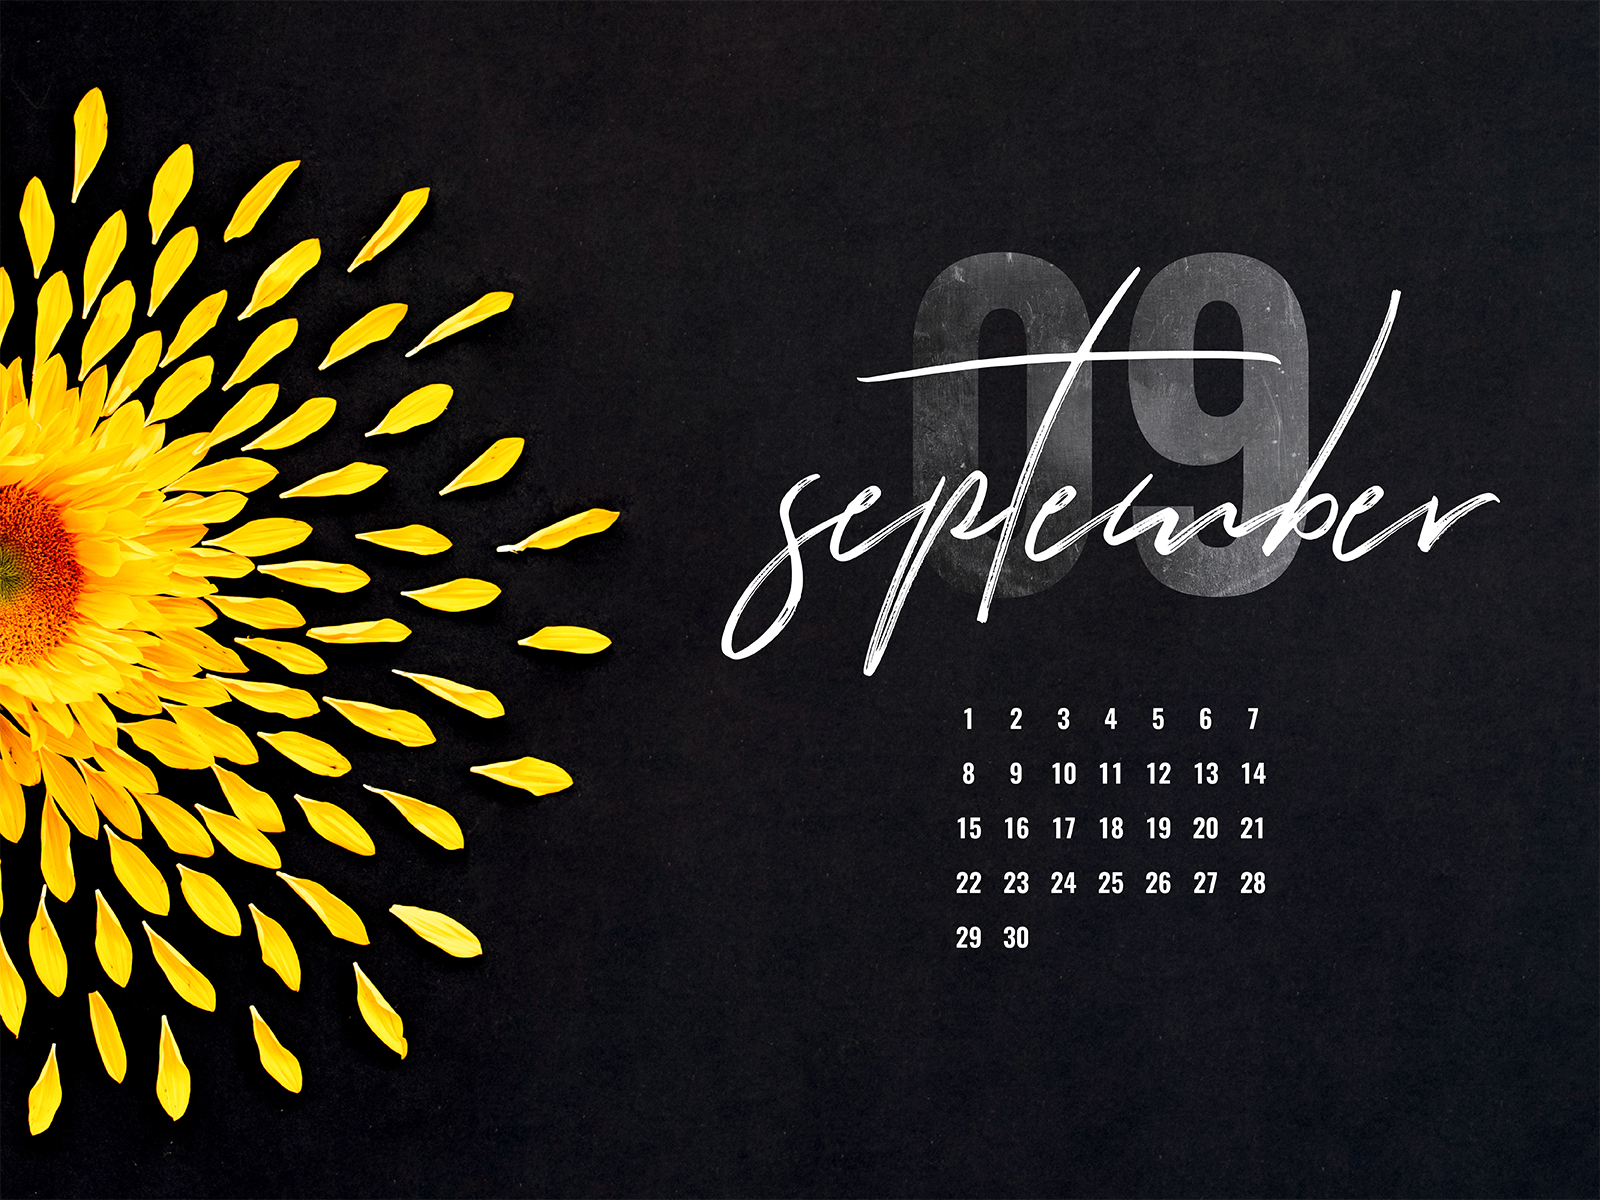 02 September Desktop Calendar - TSH_1600x1200.png